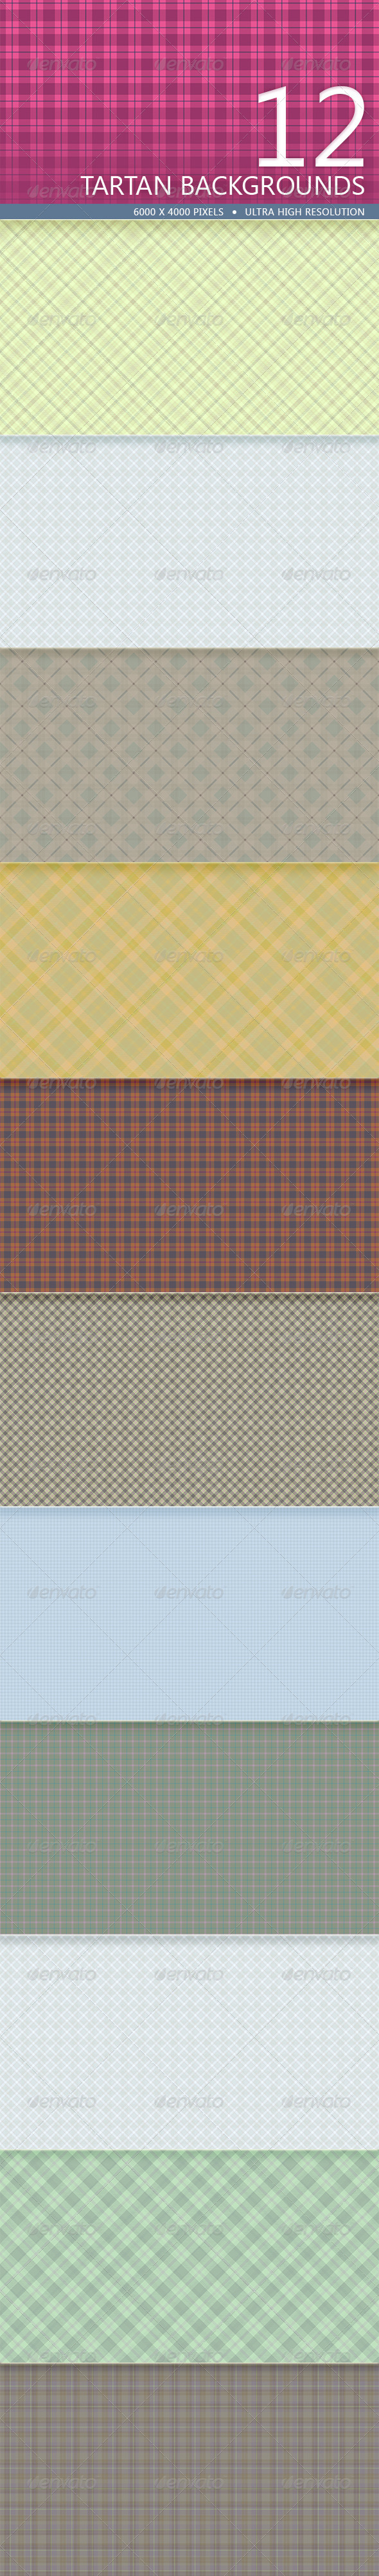 GraphicRiver Tartan Backgrounds Volume 2 5221168